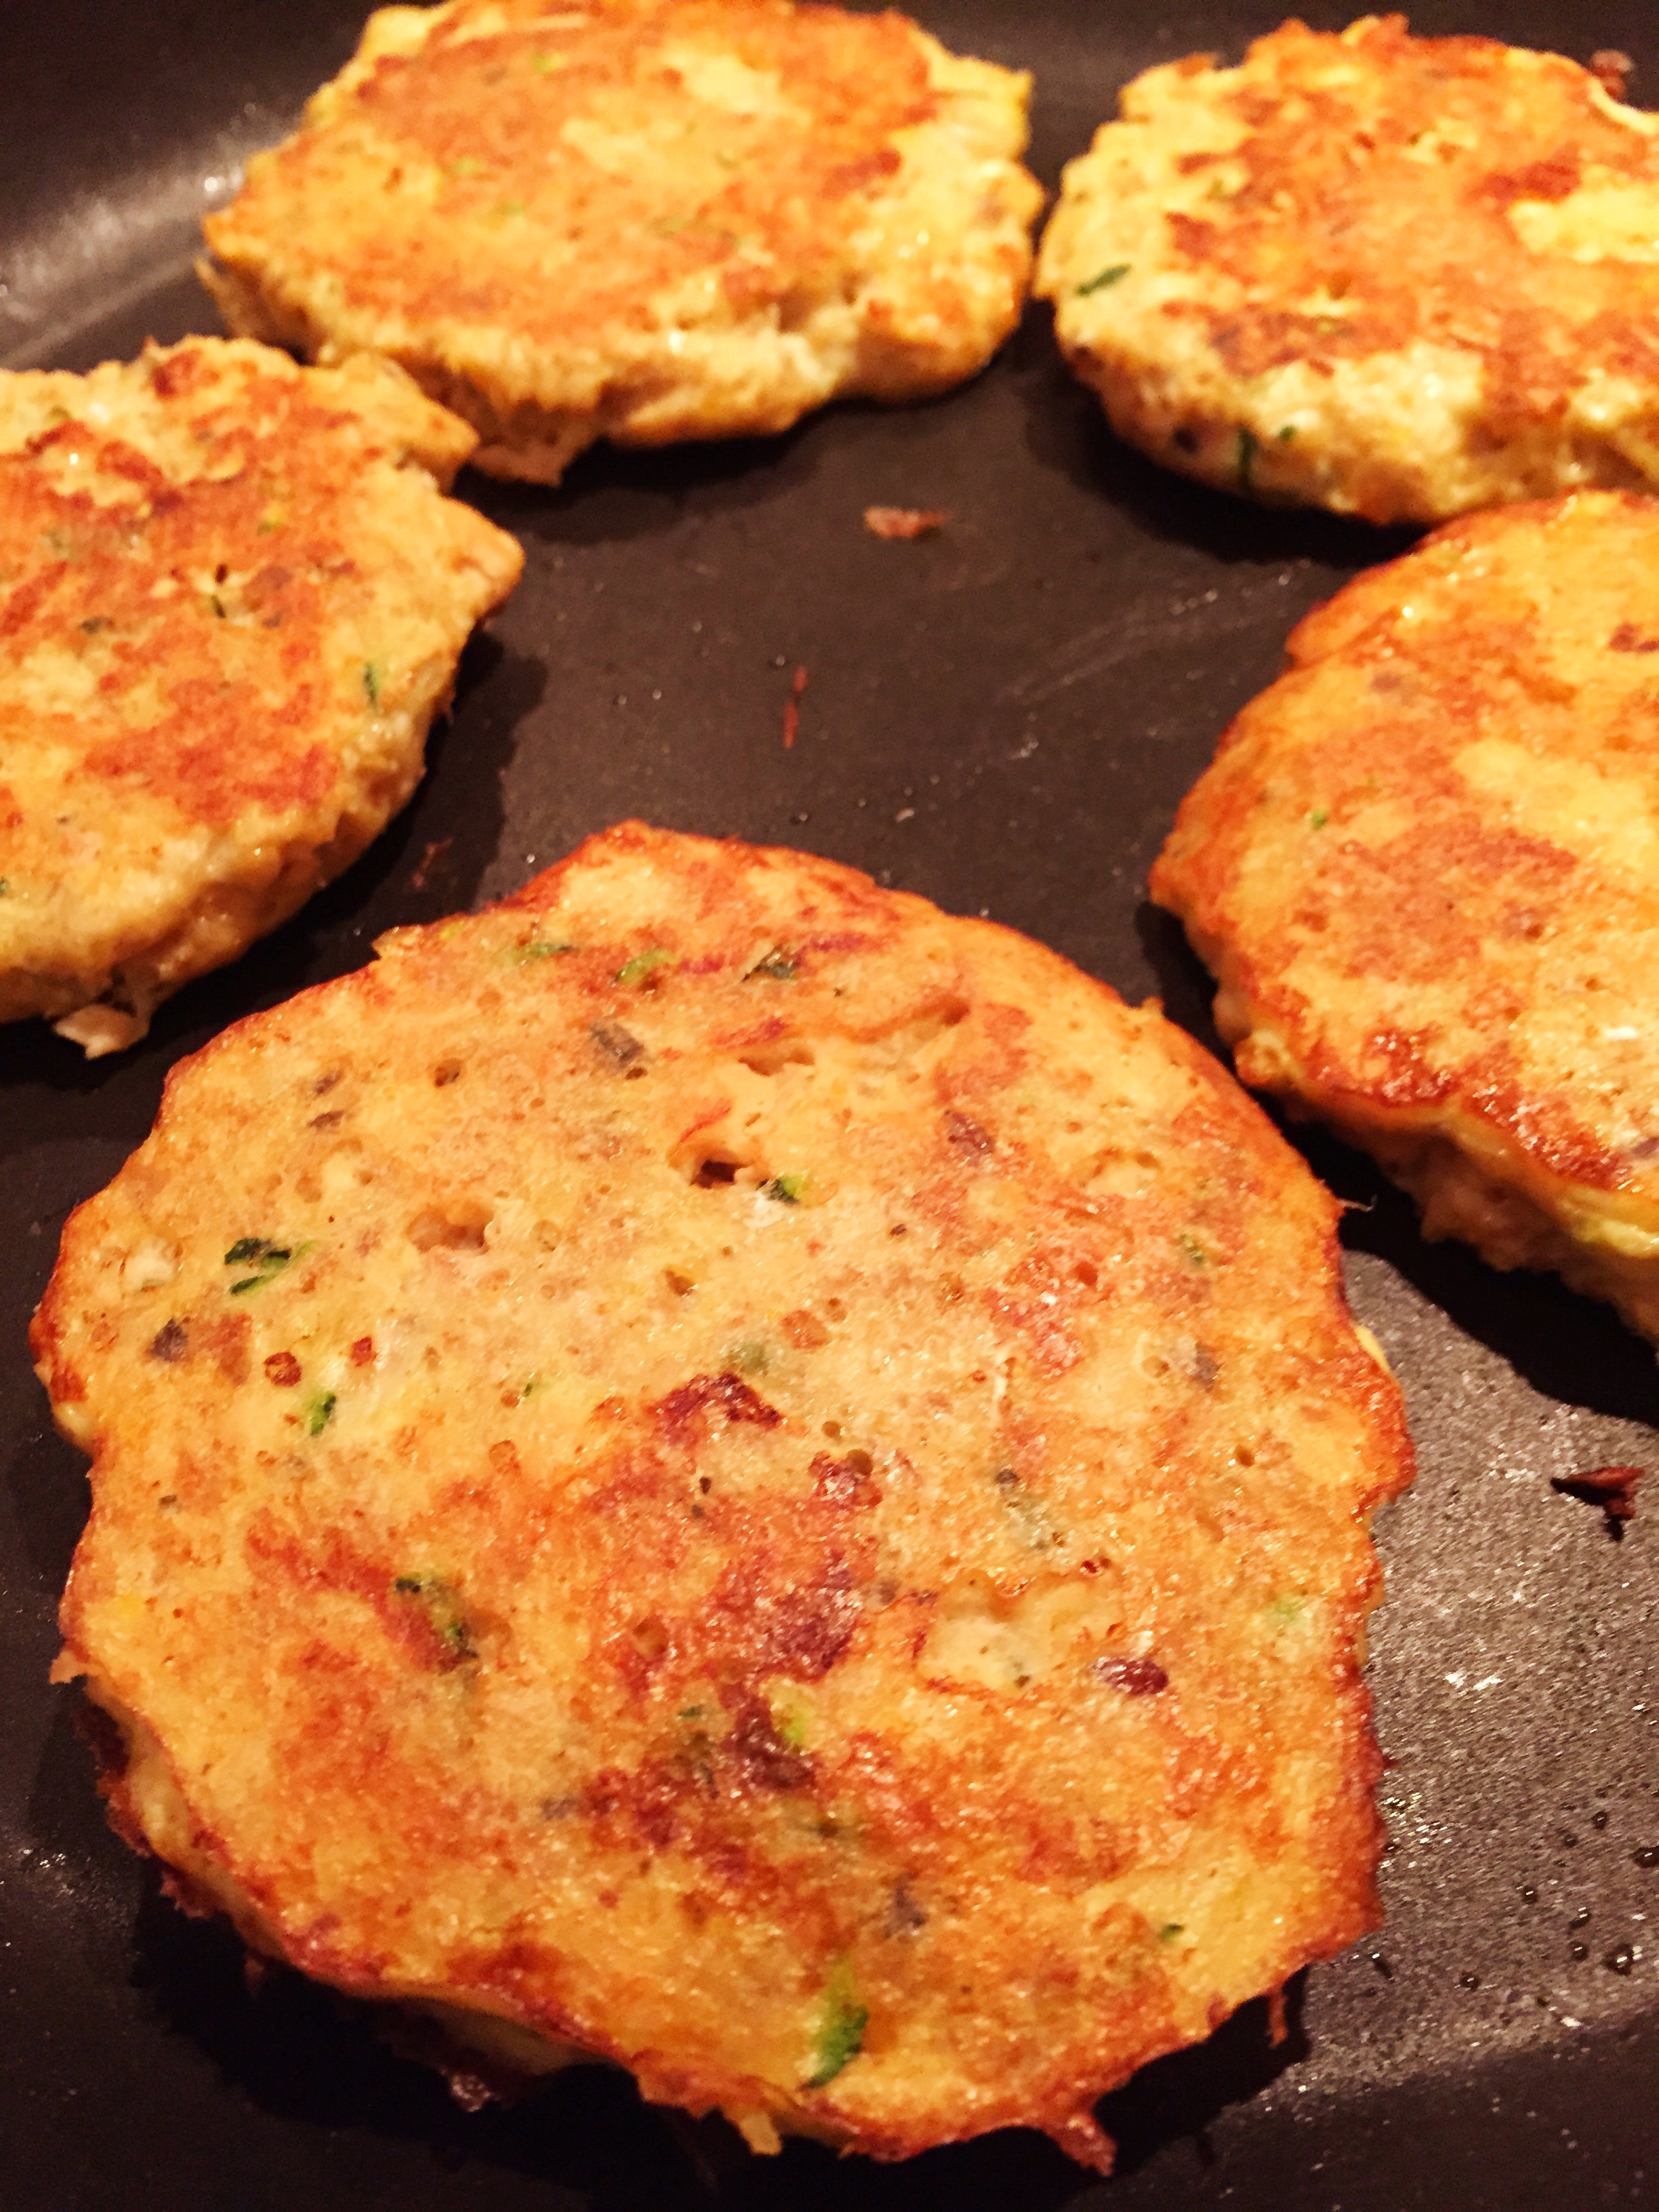 how to make salmon patties without eggs